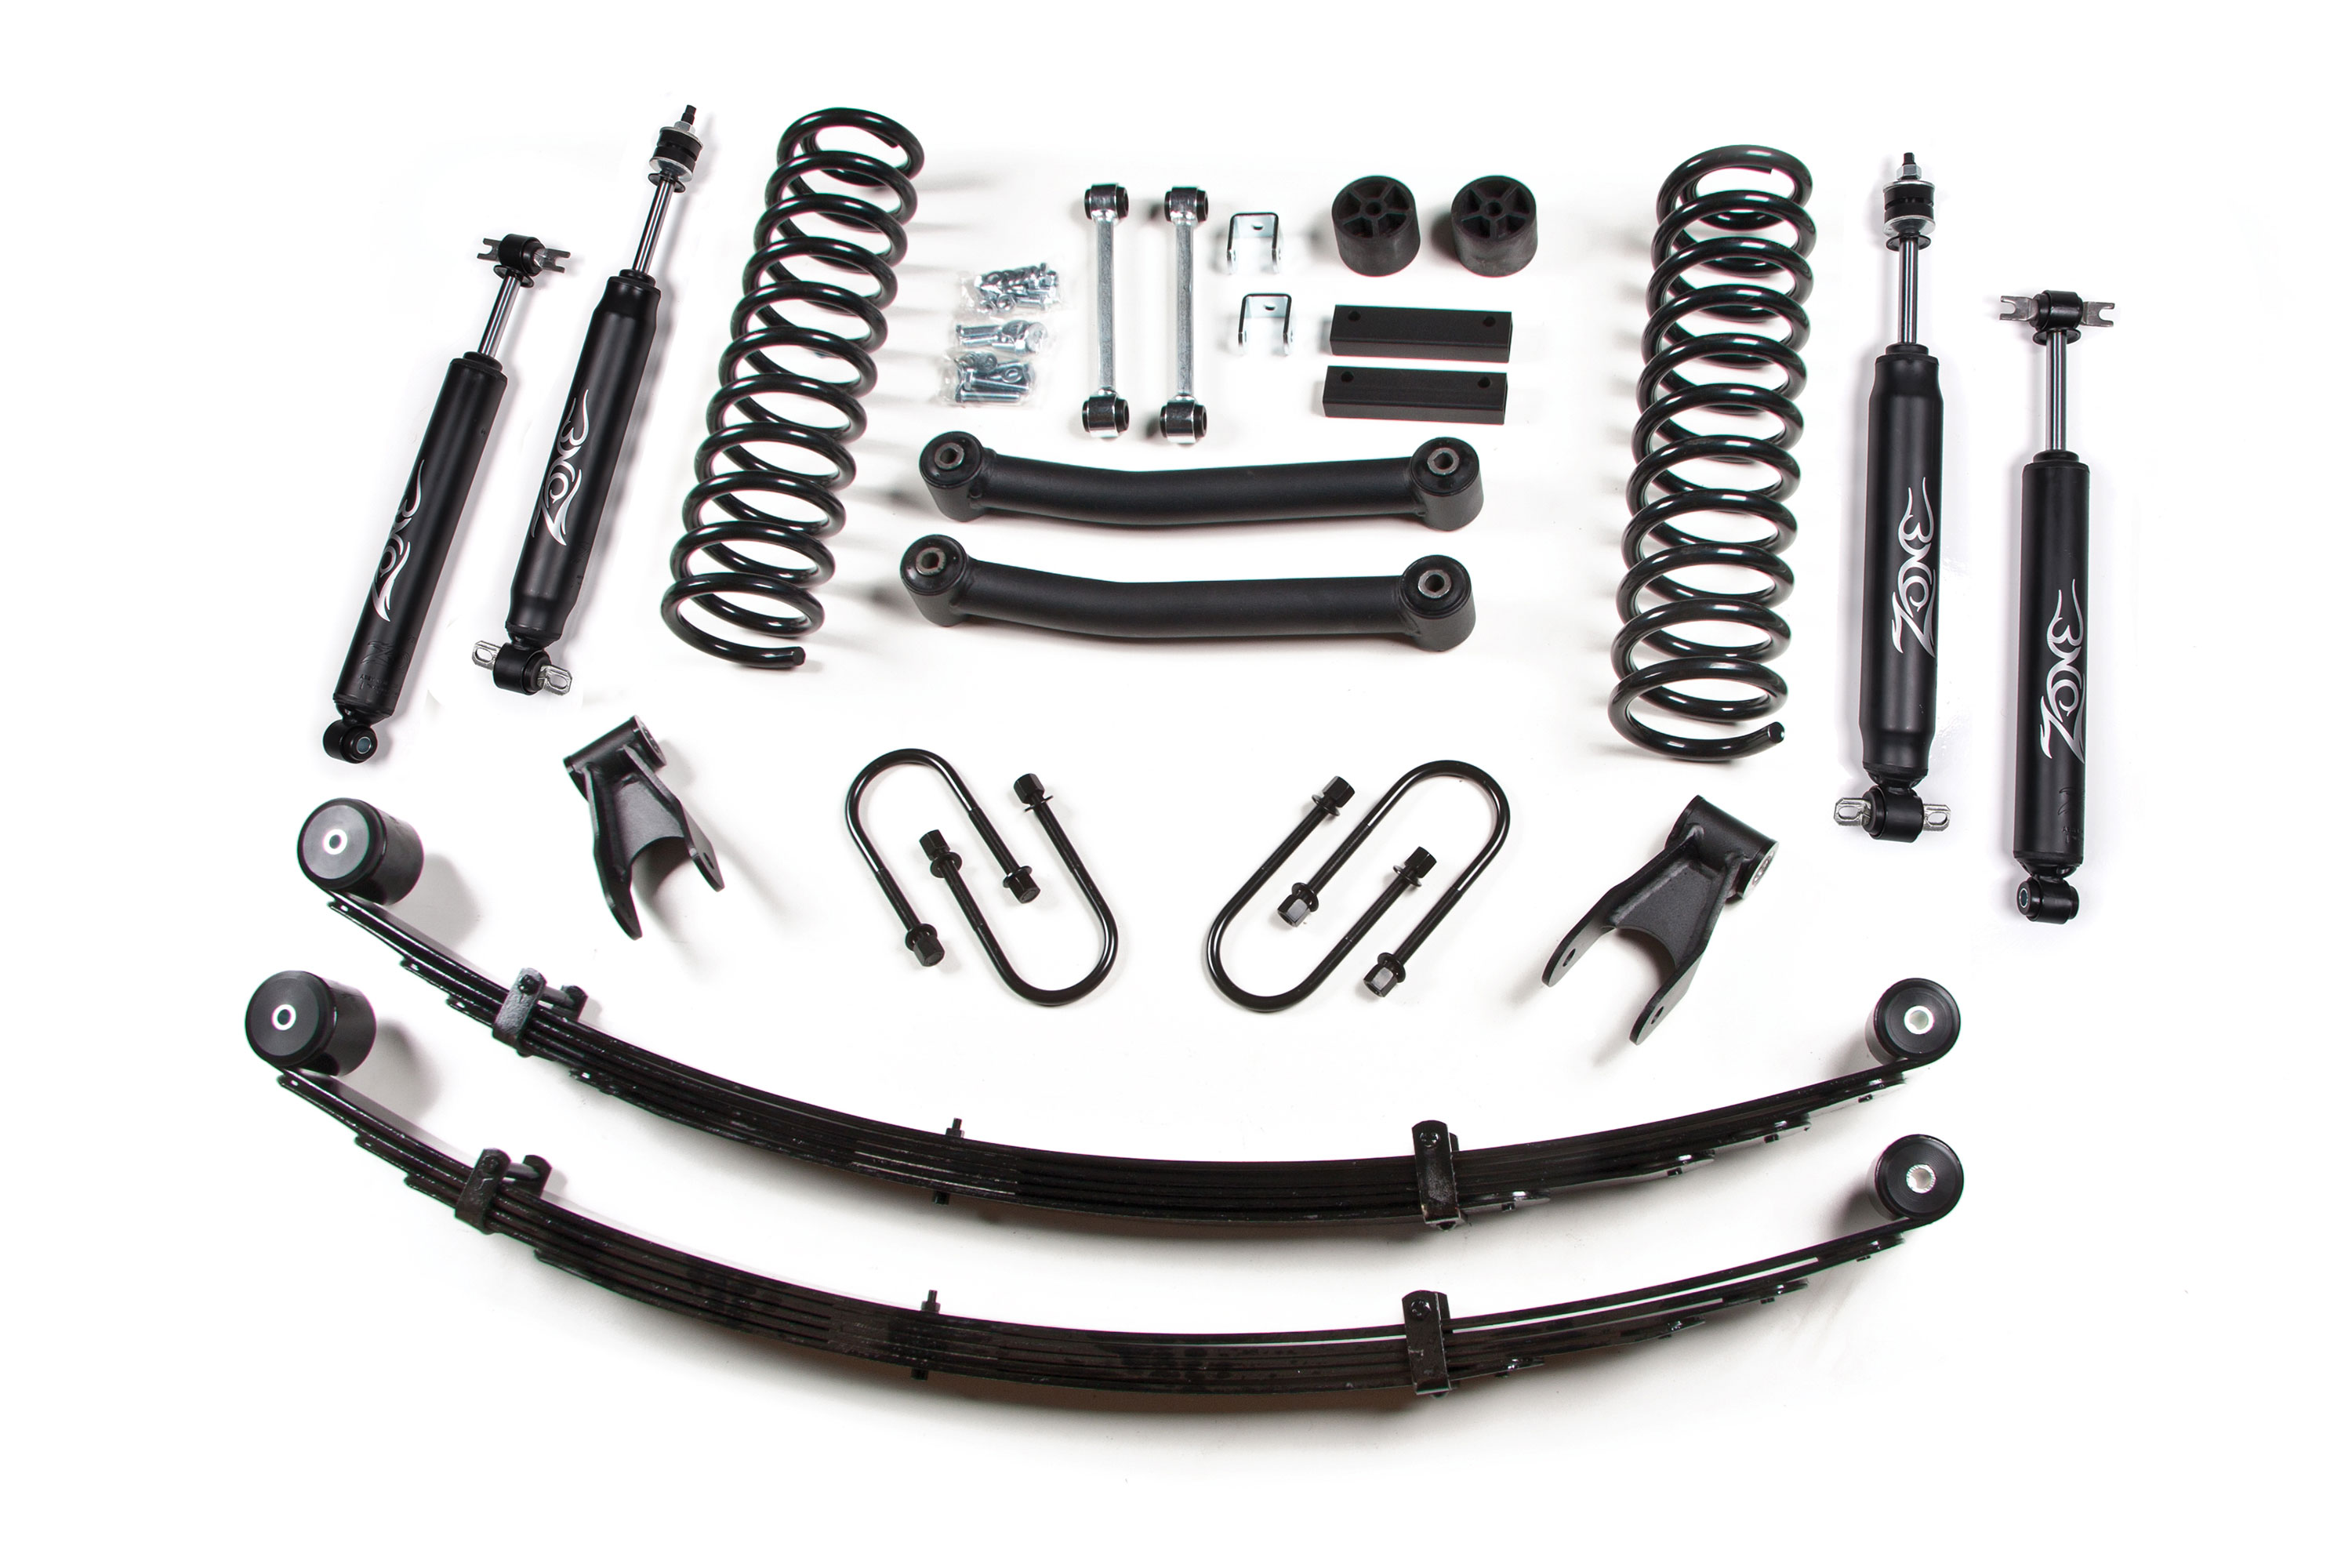 Jeep Cherokee Xj 4 5 Lift Kit W Rear Leaf Springs